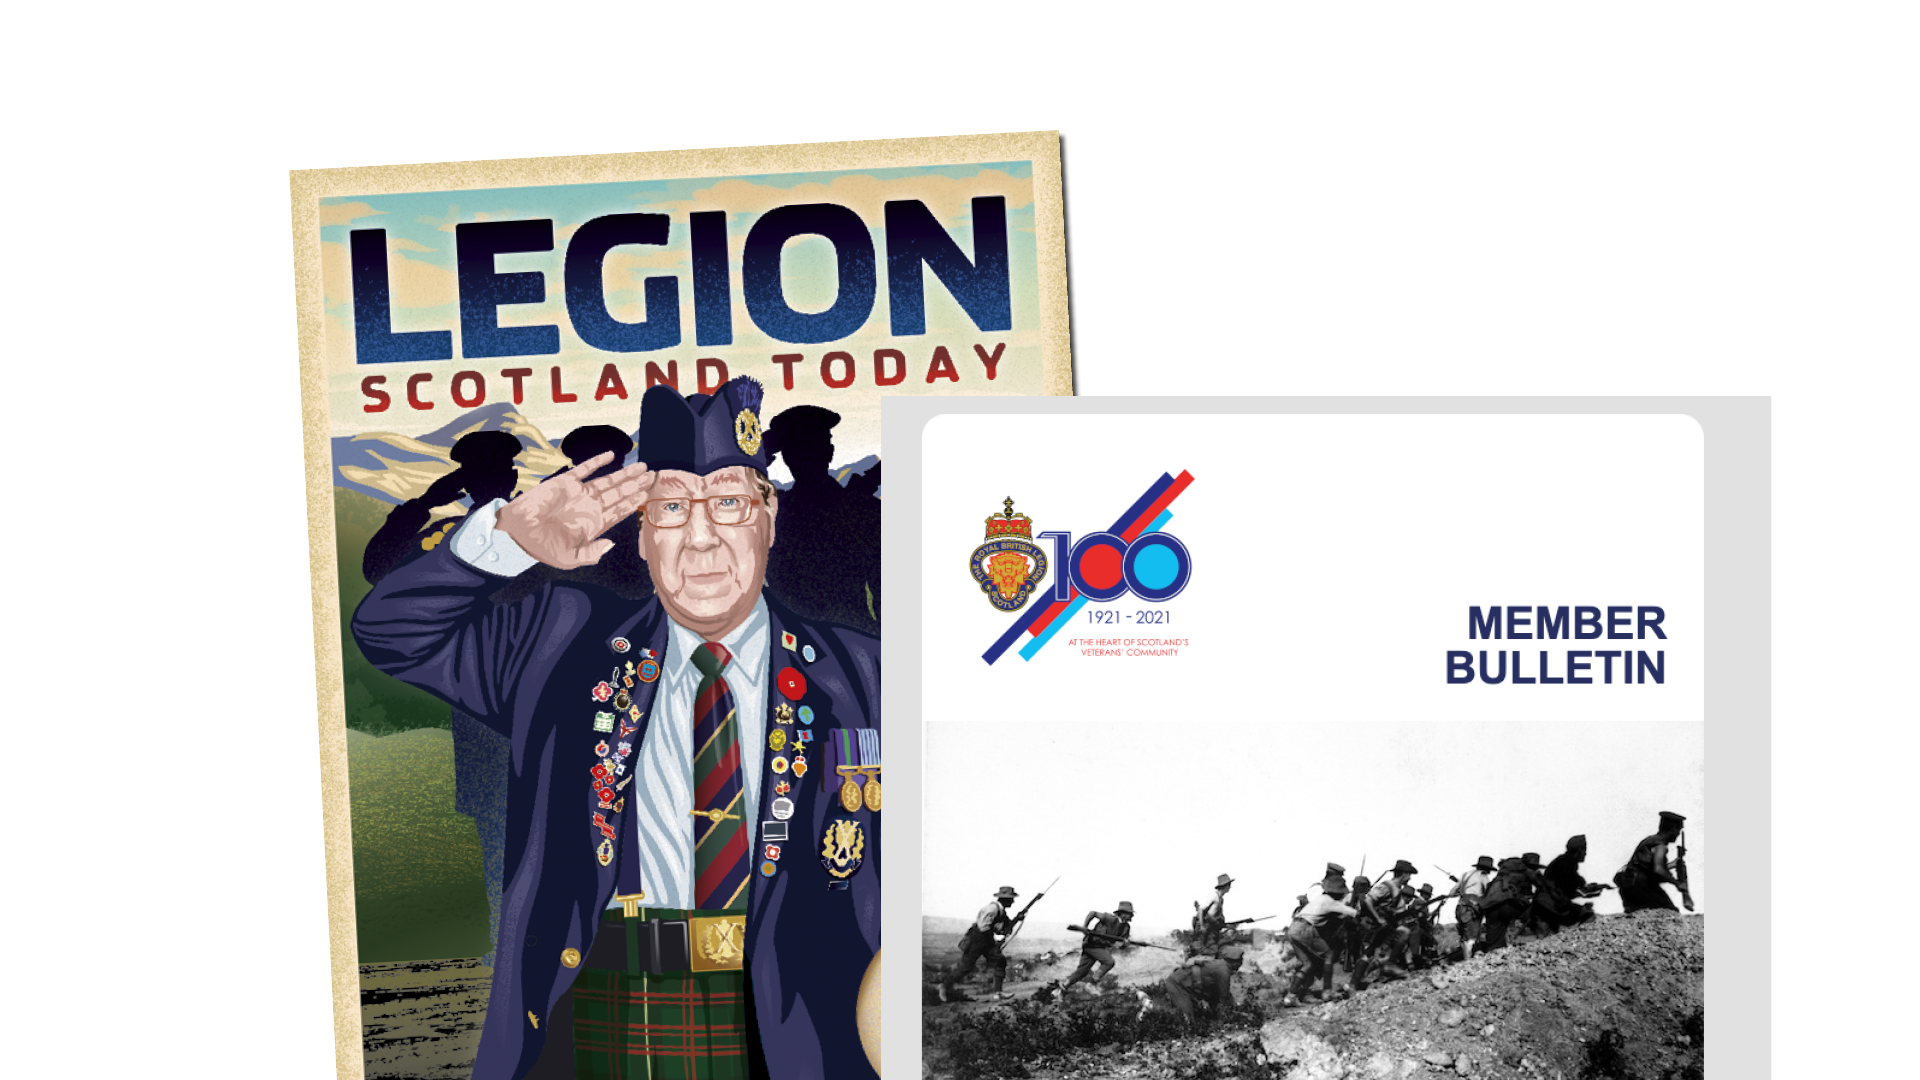 Legion Scotland Today cover and a visual of the Members E-Bulletin